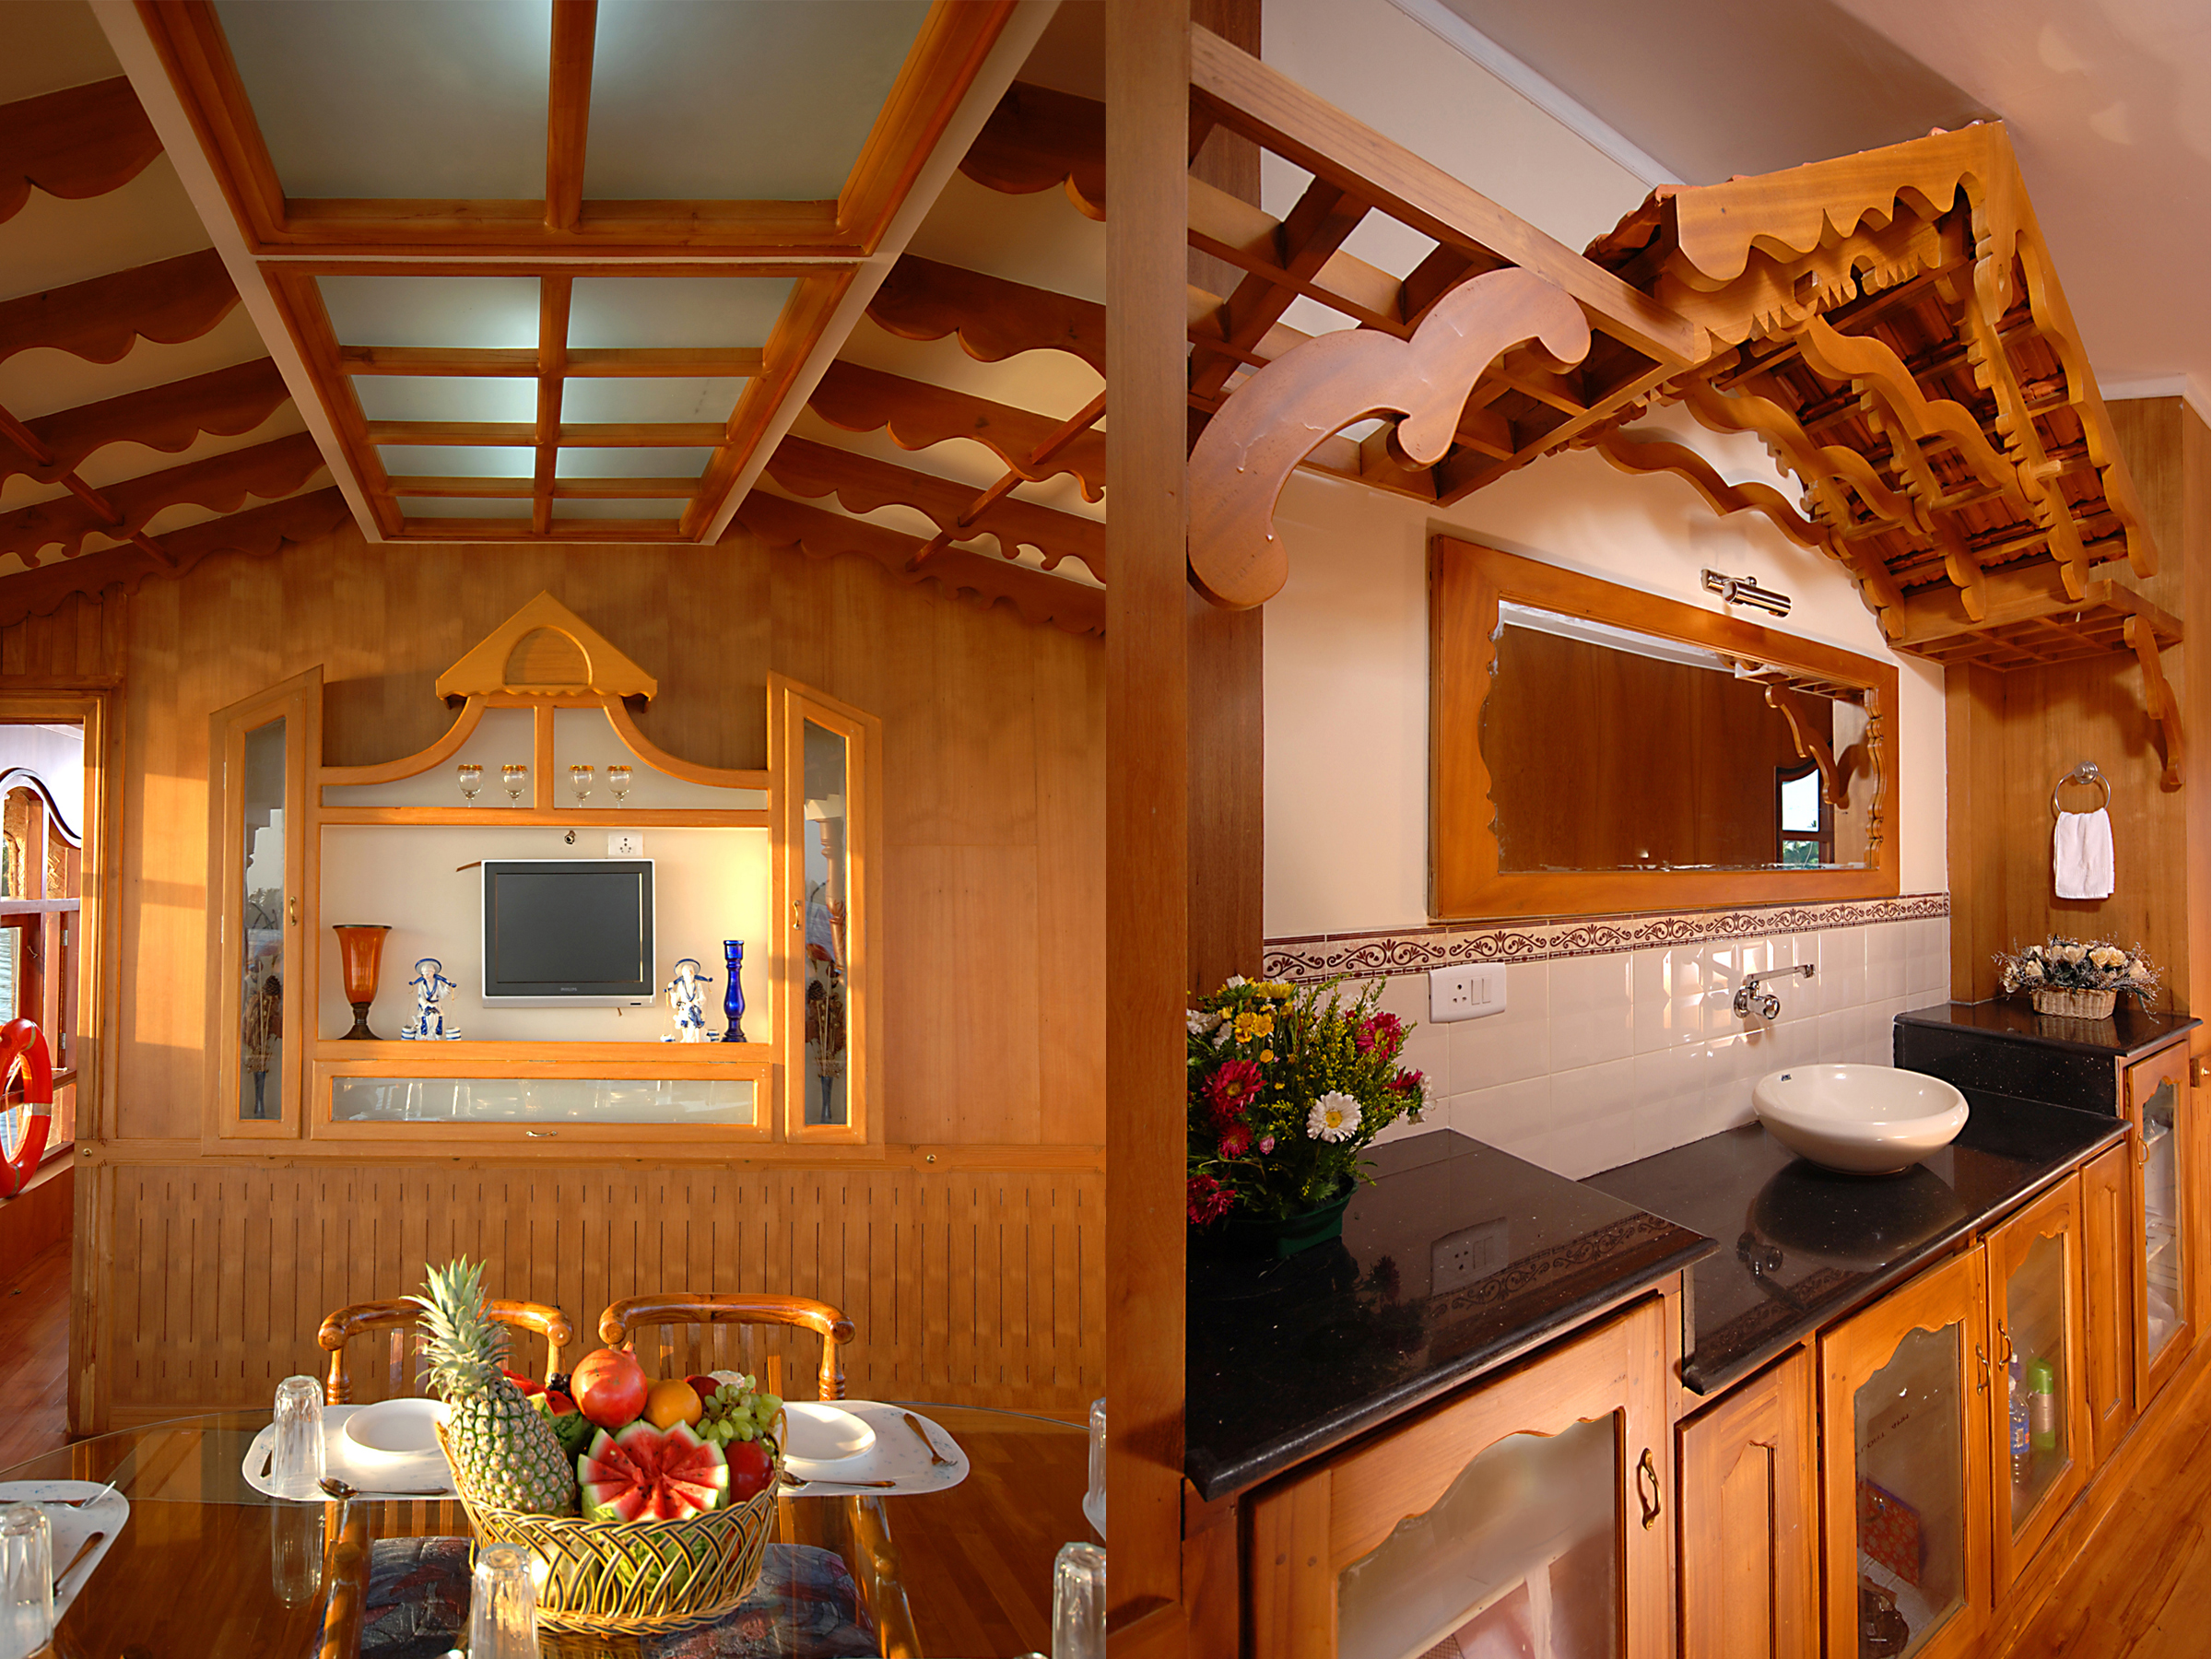 Kerala premium houseboats Boat interior design ideas home